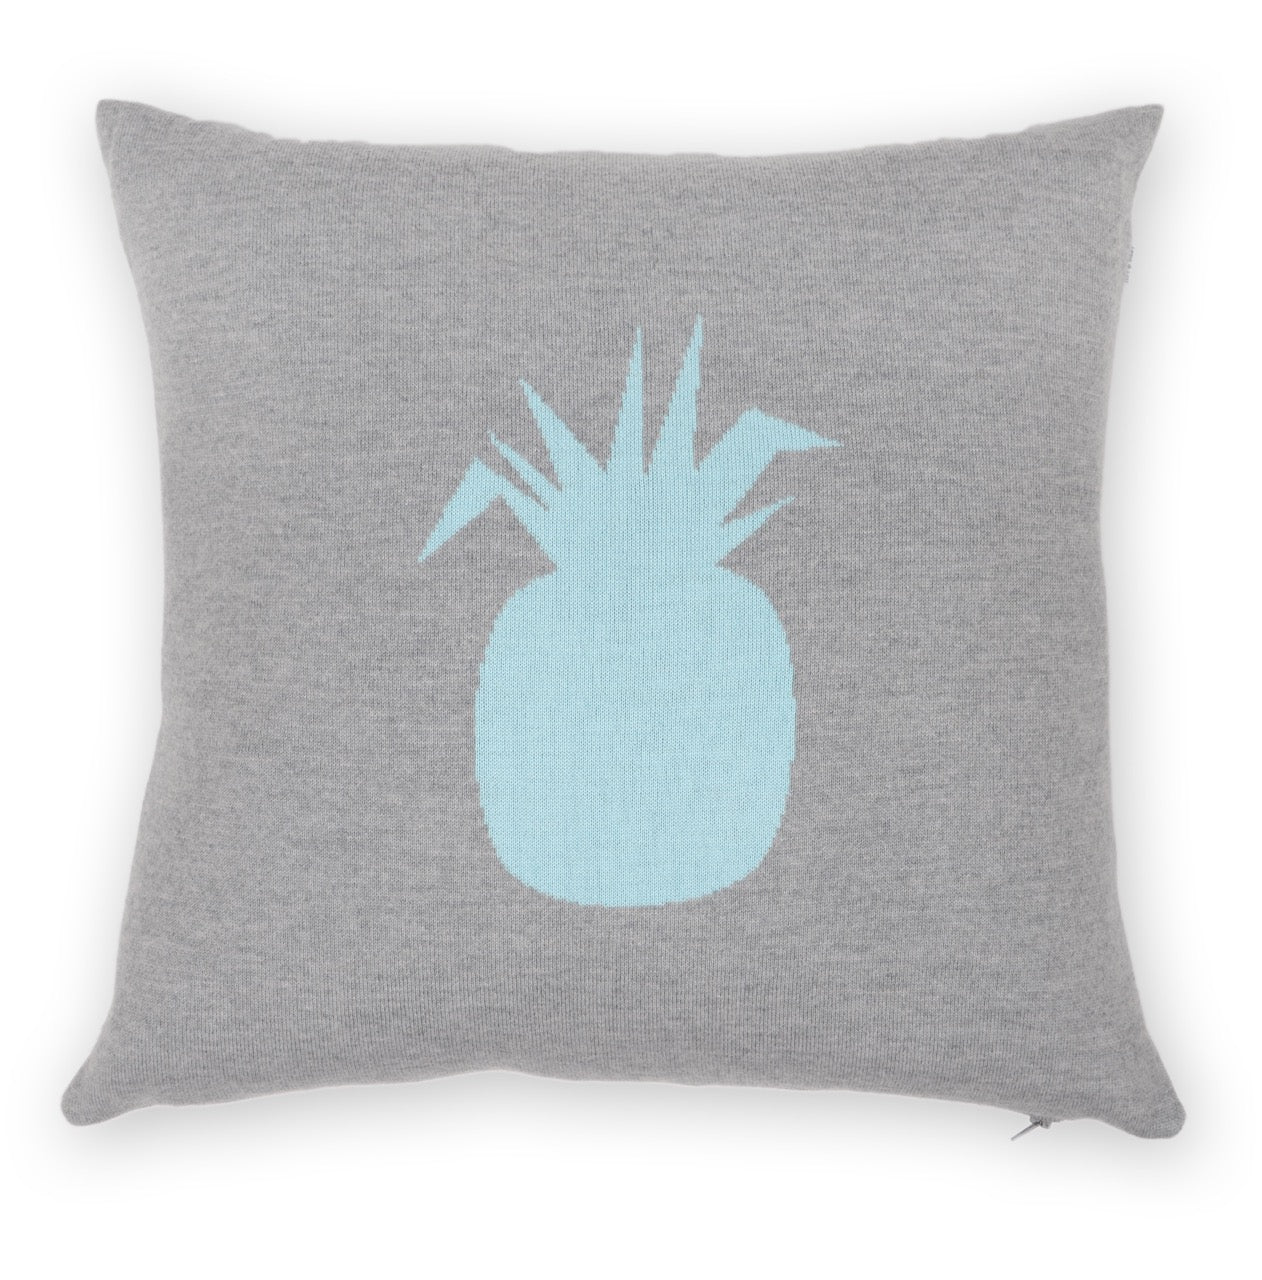 Cushion cover 50x50cm pineapple, gray / turquoise